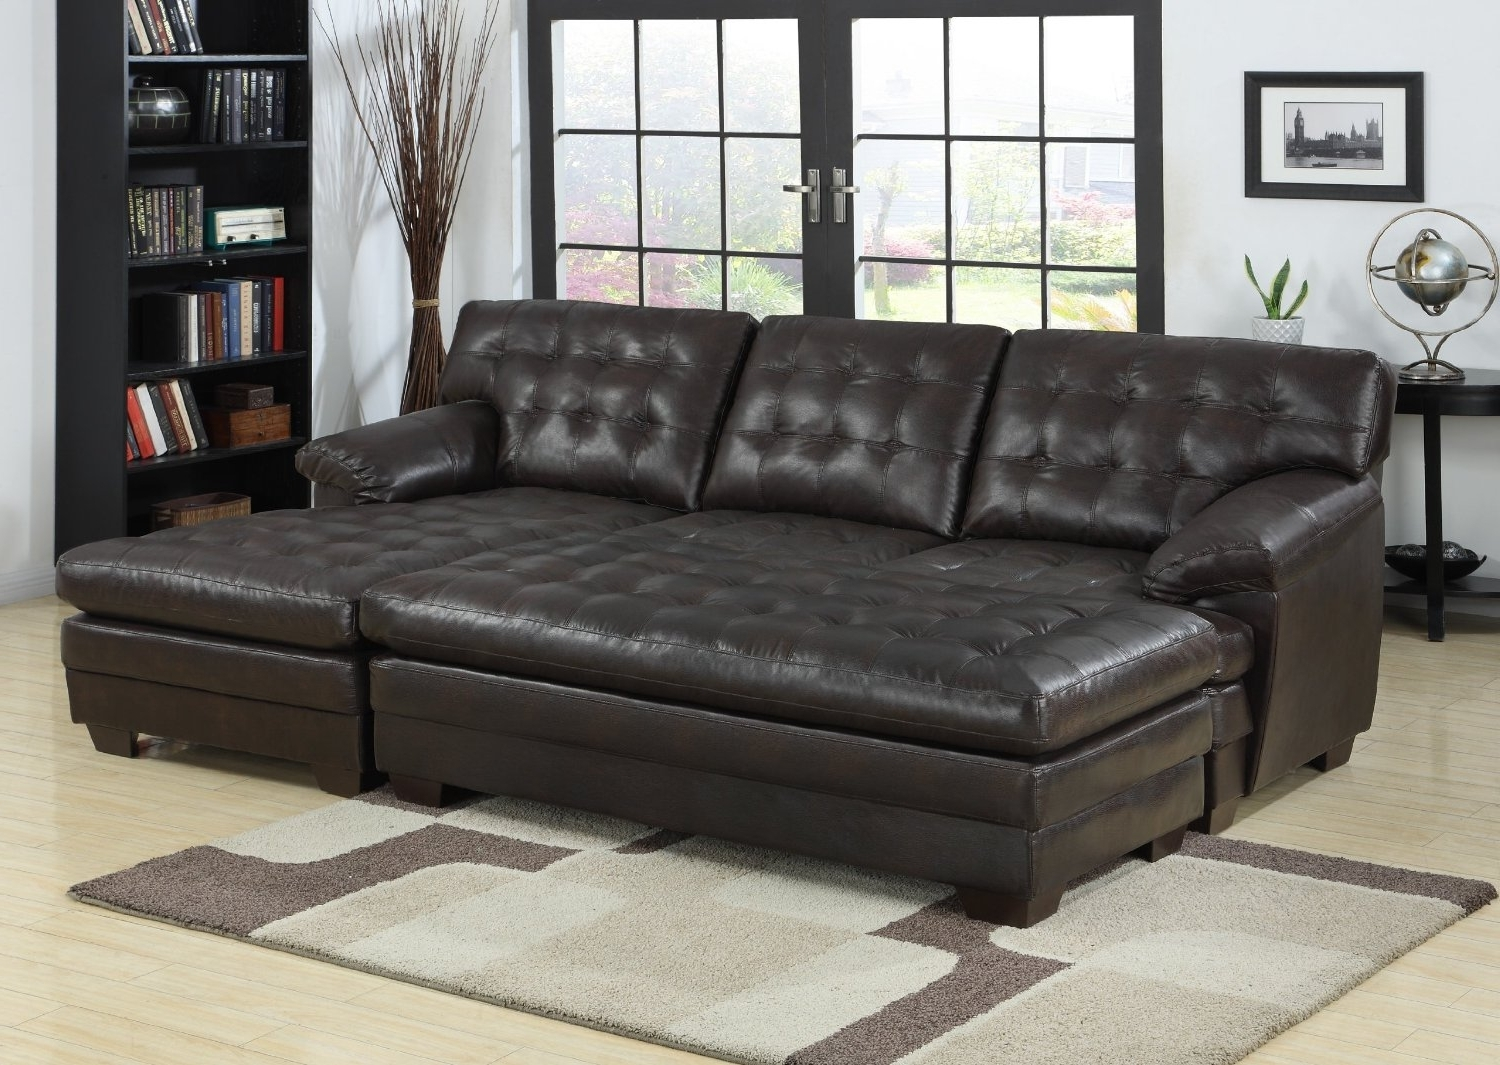 Well Known Double Chaise Lounge Sofa Image Gallery — The Home Redesign : The With Regard To Leather Chaise Lounge Sofas (View 14 of 15)